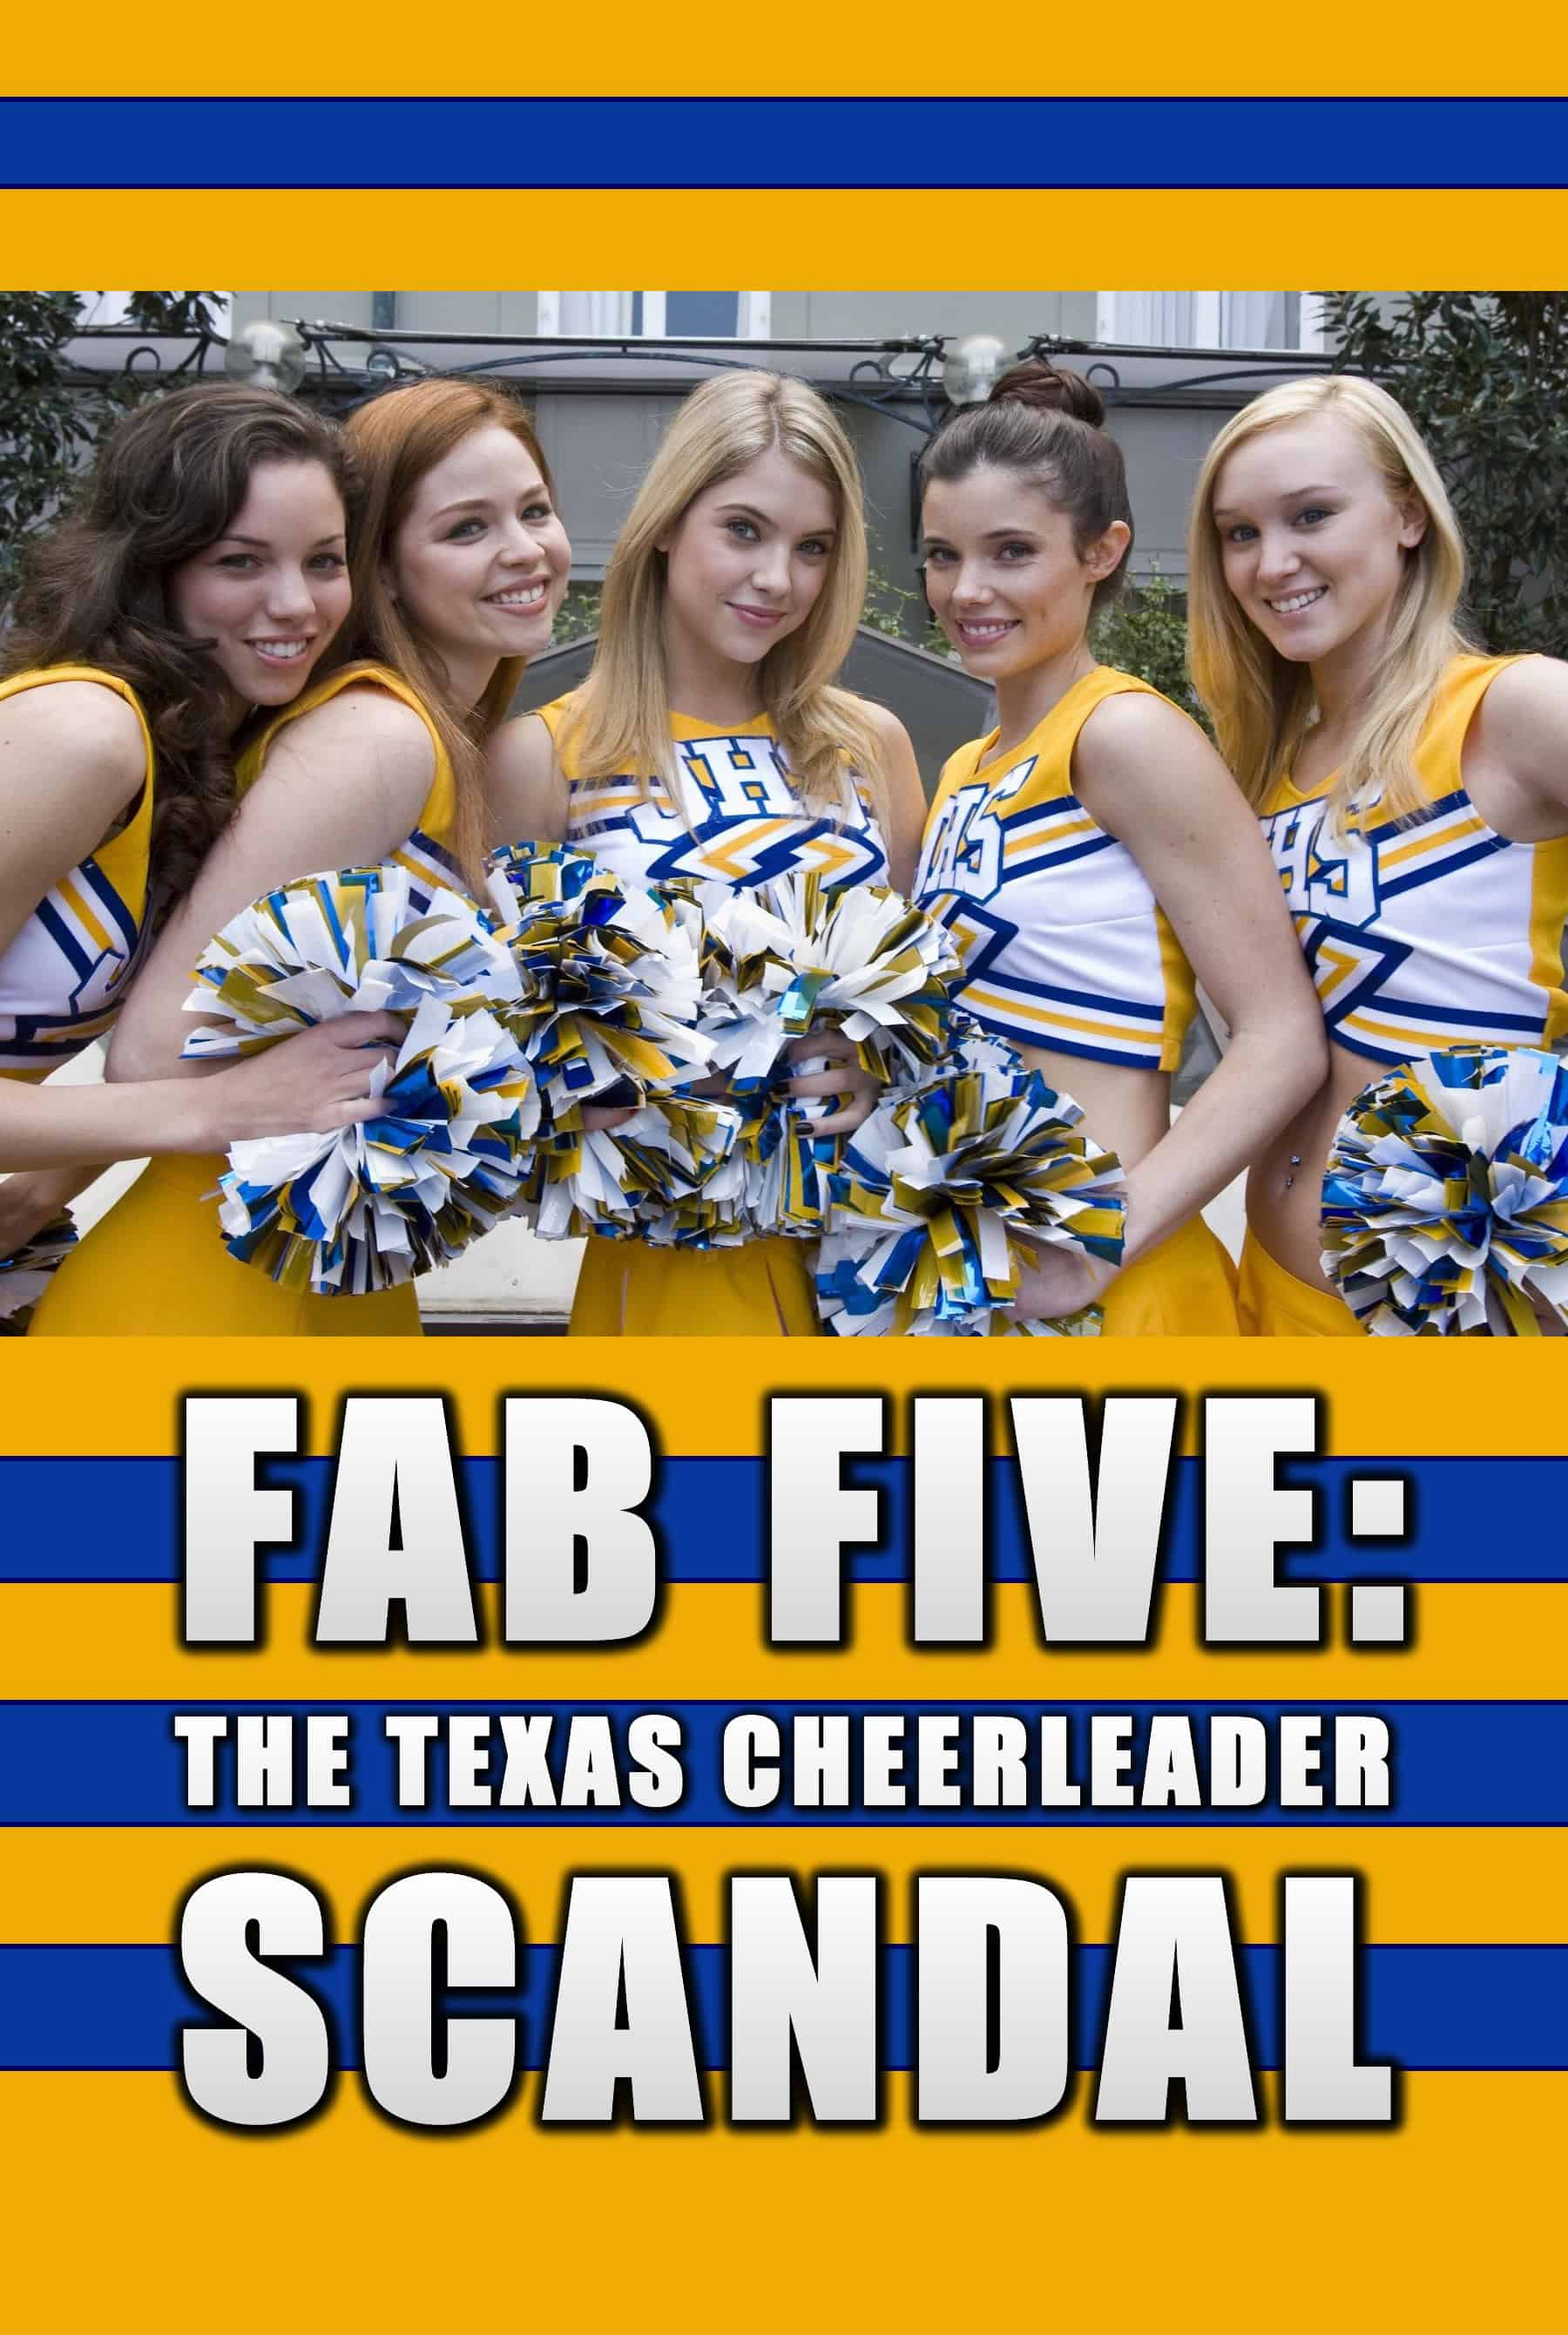 Fab Five: The Texas Cheerleader Scandal, 2008